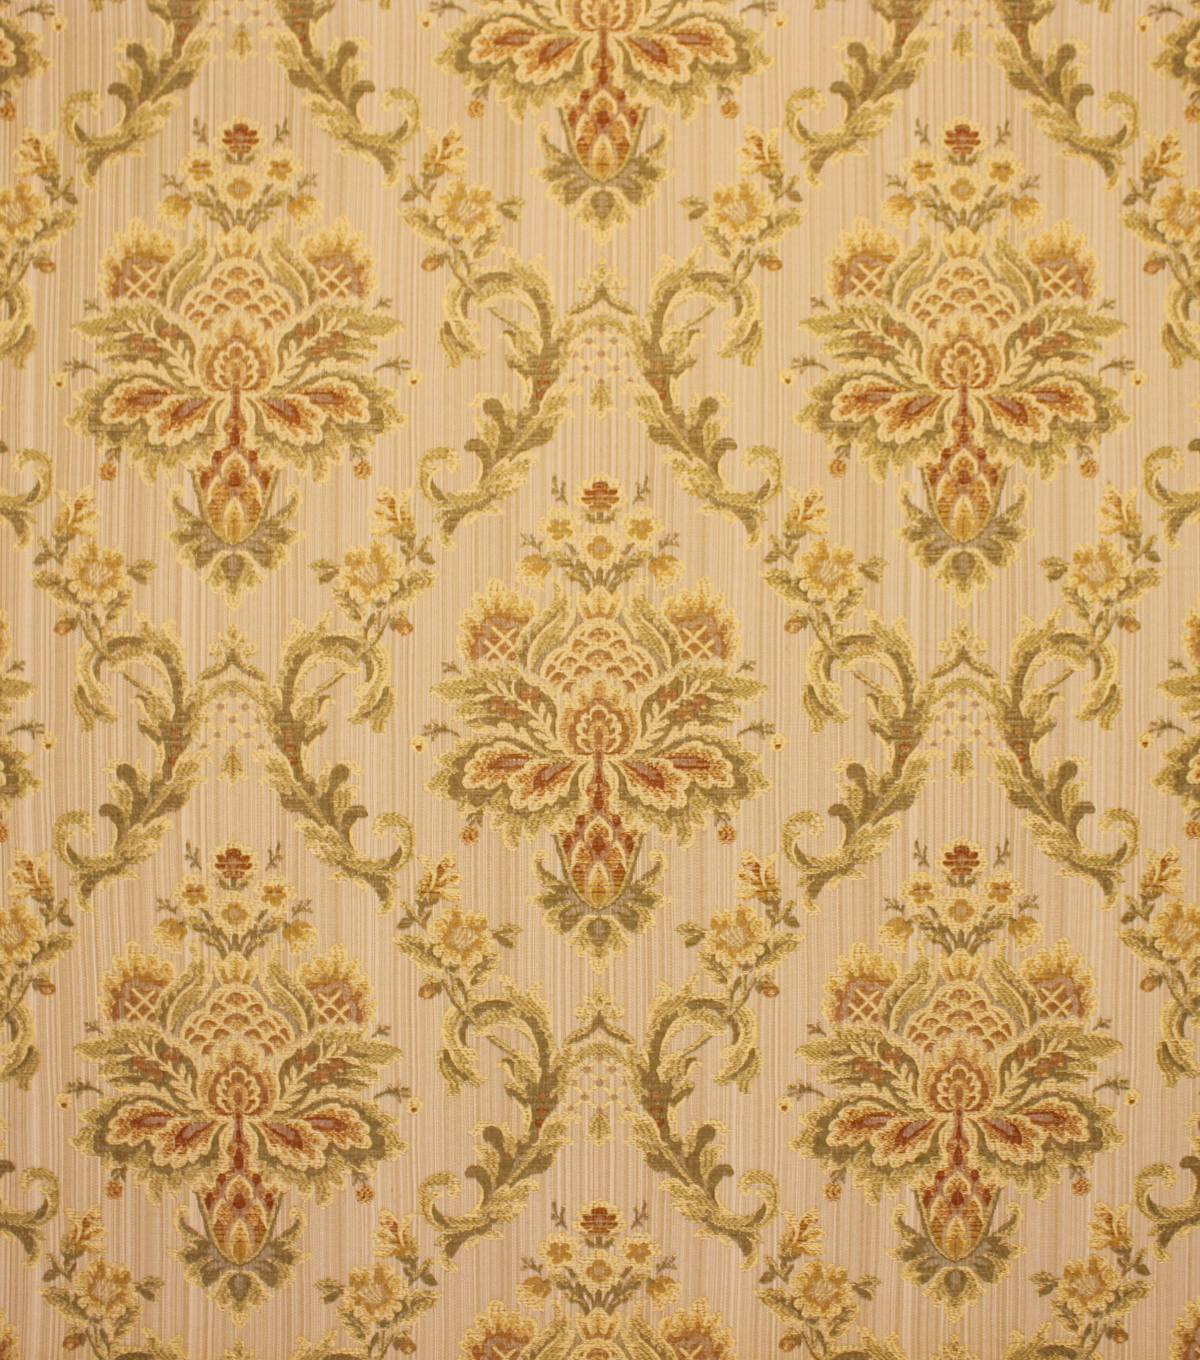 Home Decor 8\u0022x8\u0022 Fabric Swatch-Upholstery Fabric Barrow M7085-5813 Aubusson